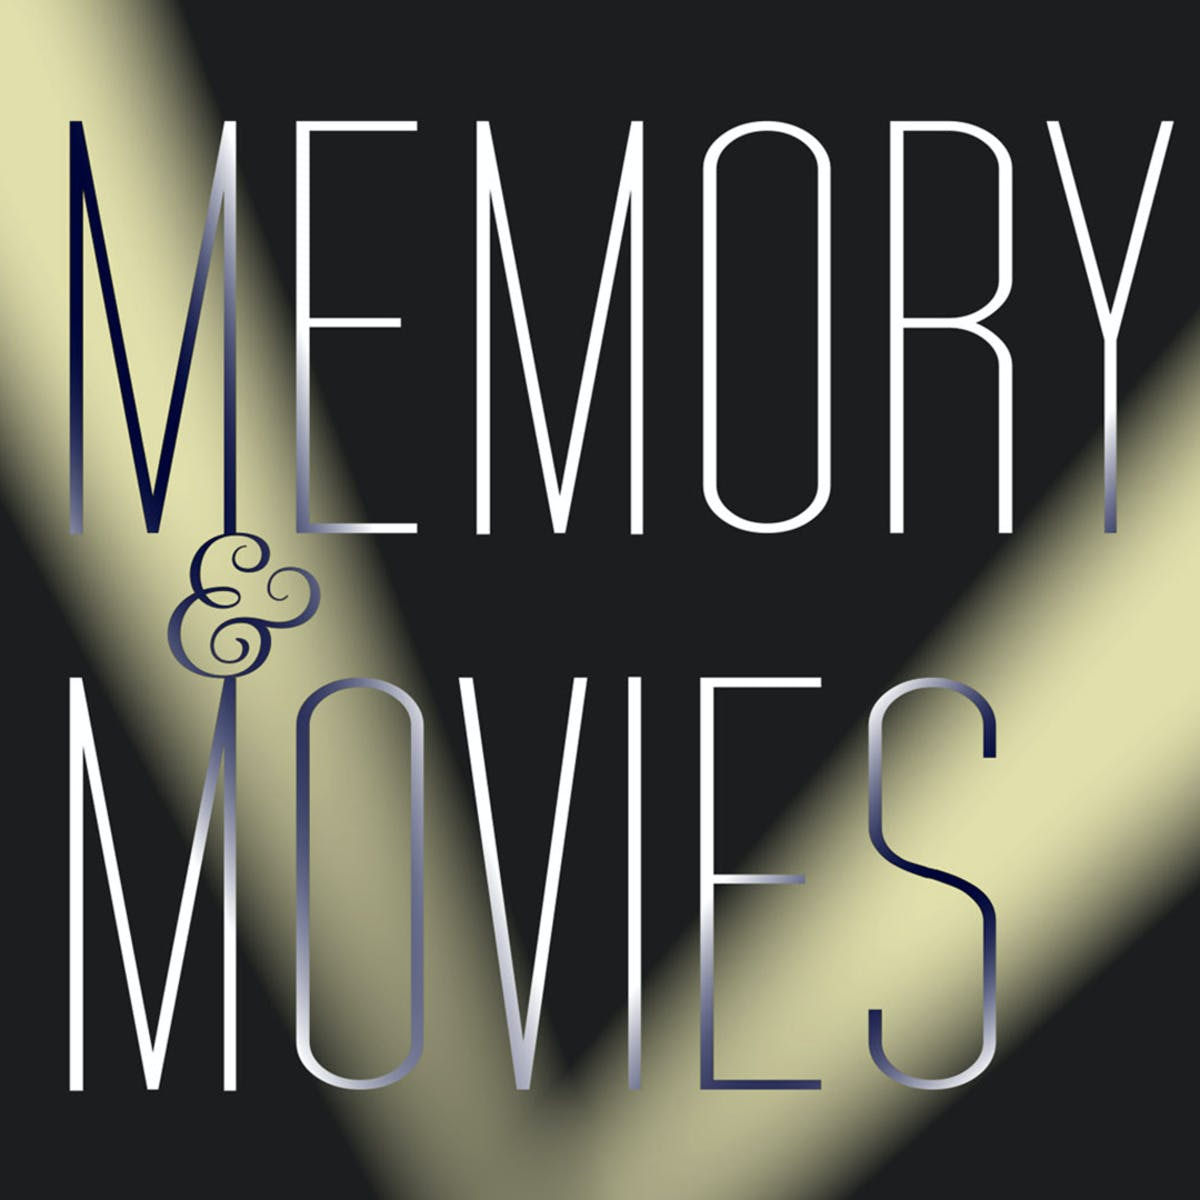 Understanding Memory: Explaining the Psychology of Memory through Movies